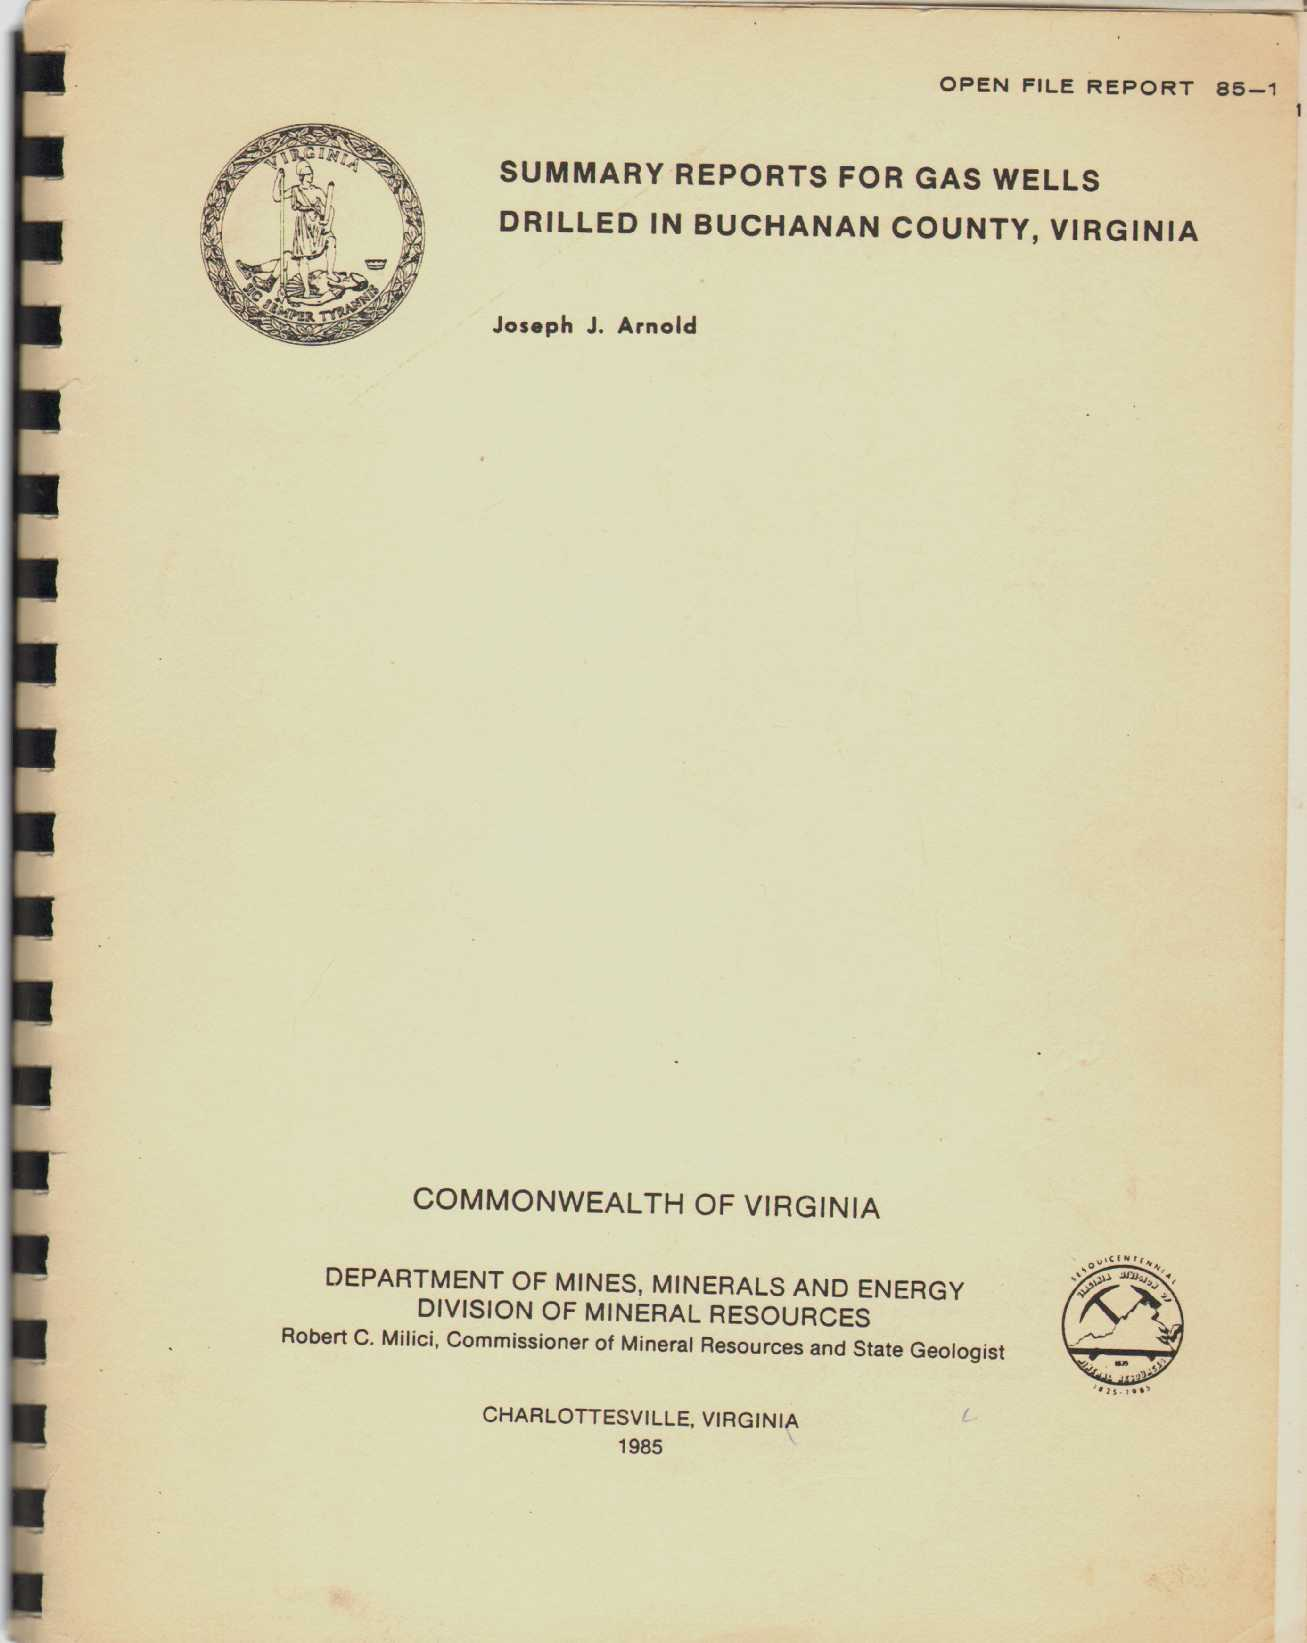 SUMMARY REPORTS FOR GAS WELLS DRILLED IN BUCHANAN COUNTY, VIRGINIA Open File Report 85-1, Arnold, Joseph J